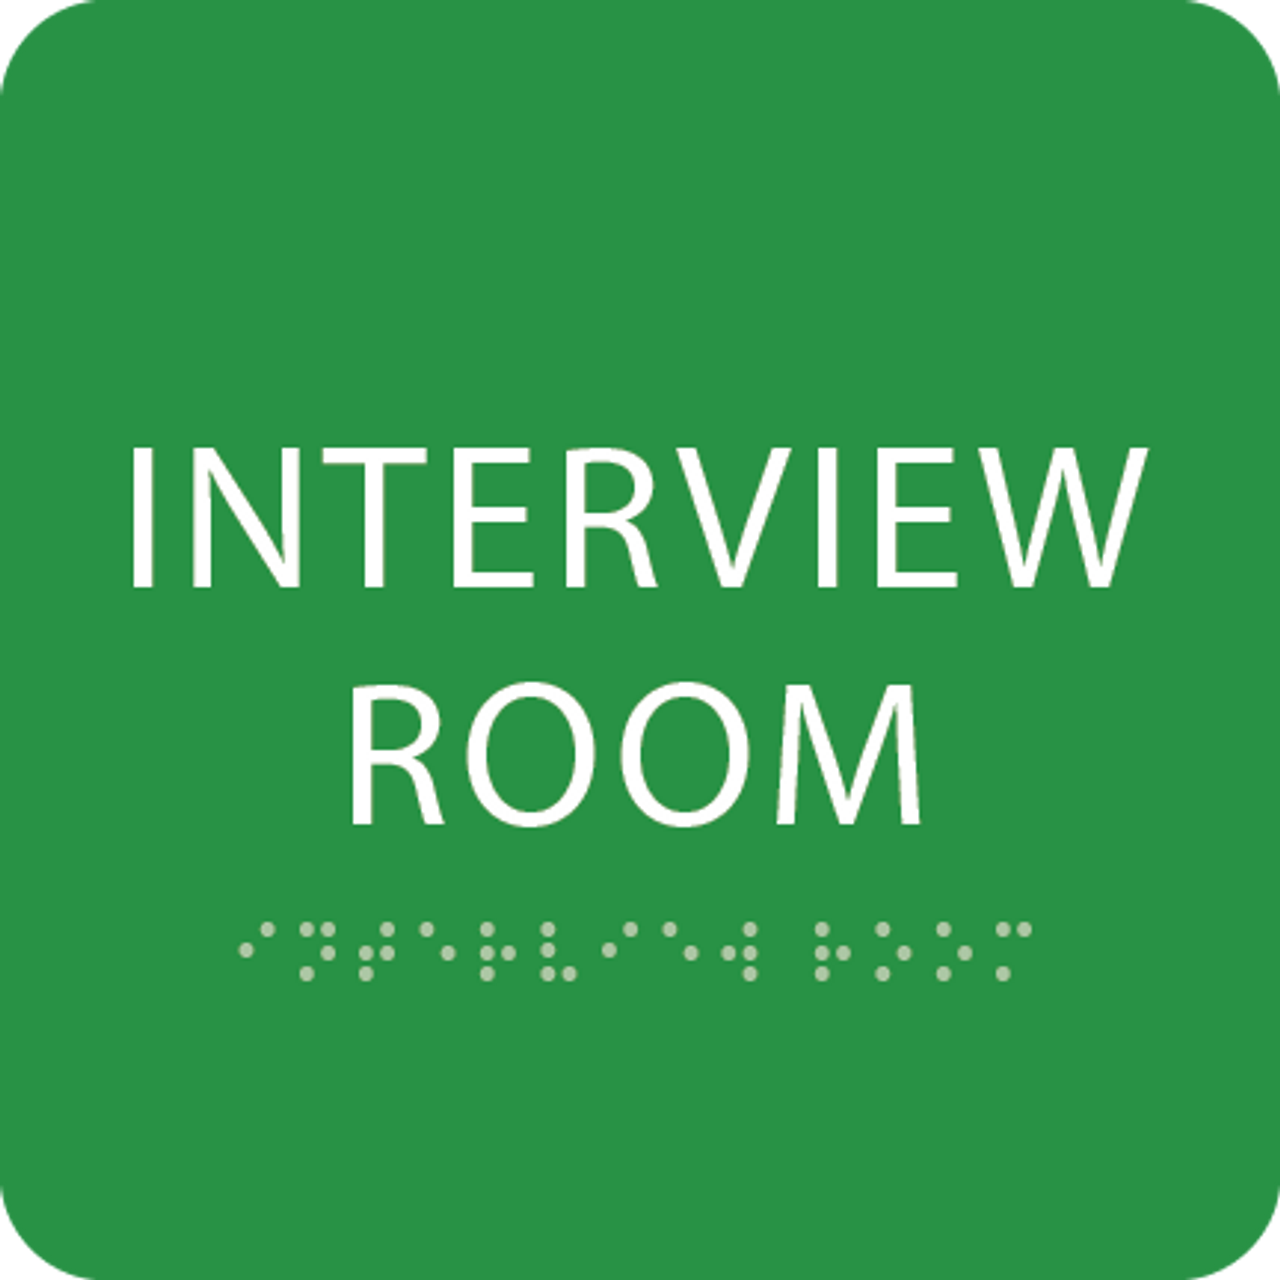 Green Interview Room Braille Sign